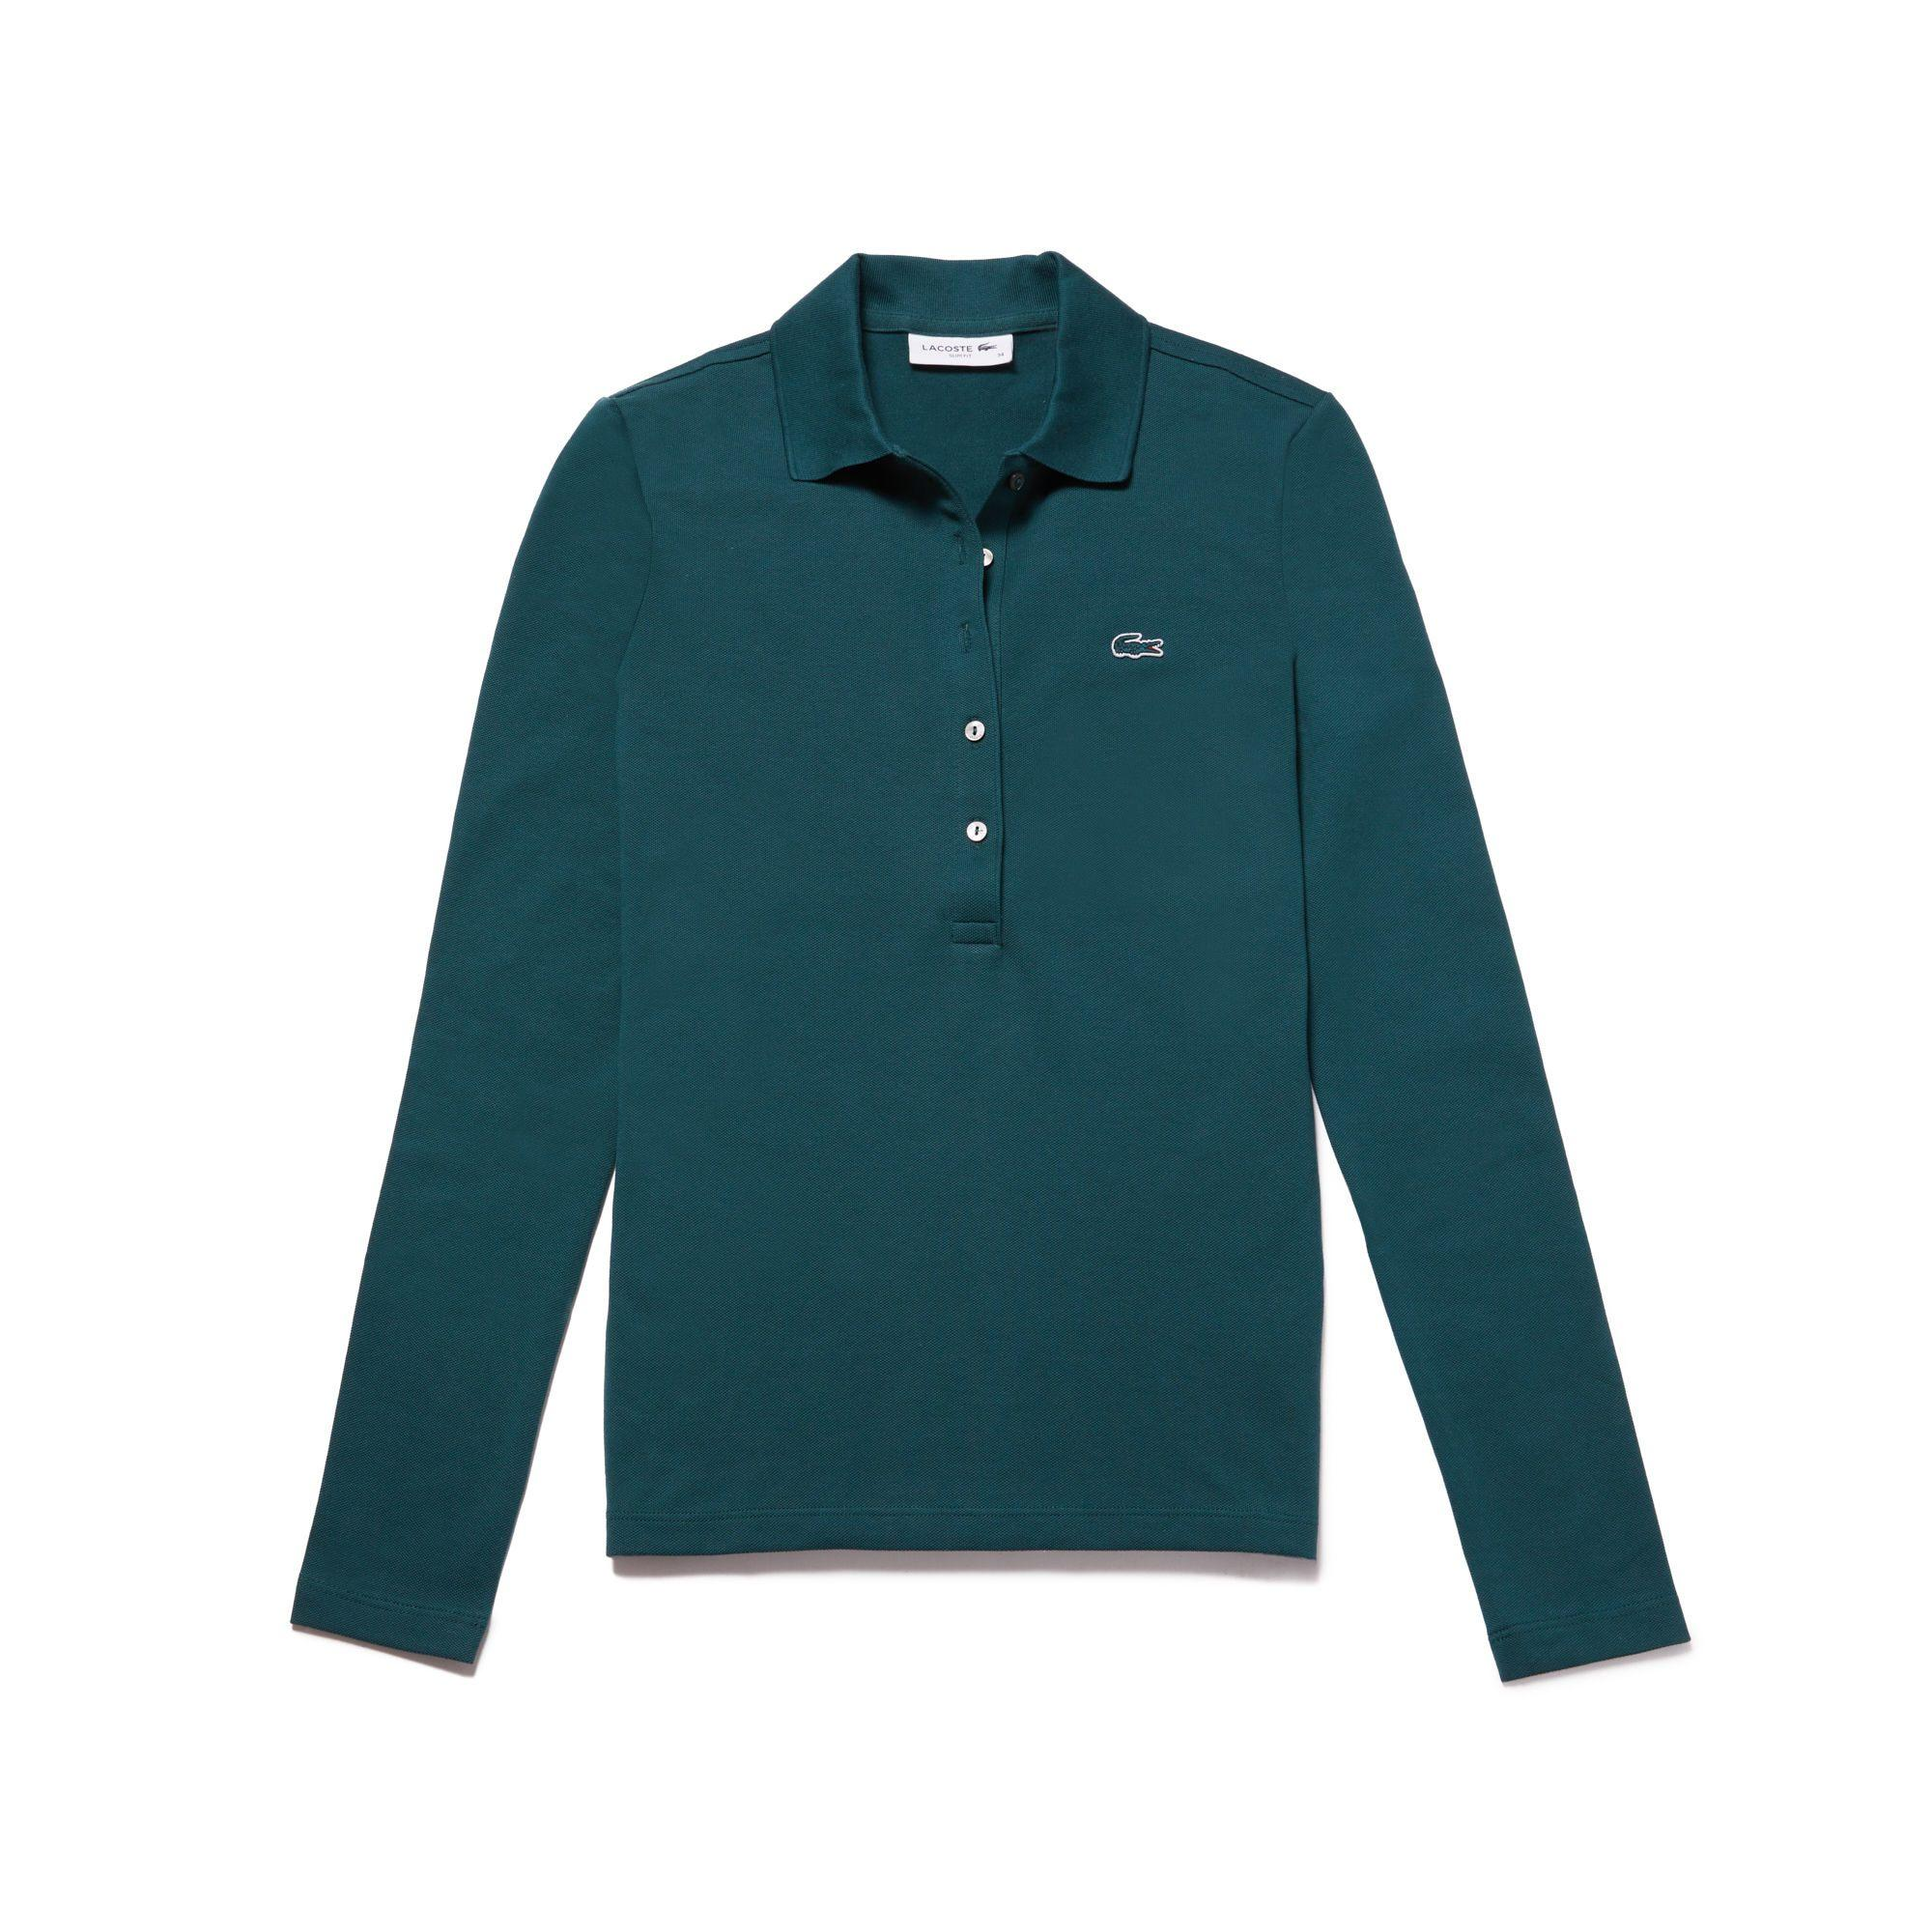 Lacoste Women's Slim Fit Stretch Mini PiquÉ Polo Shirt In Green